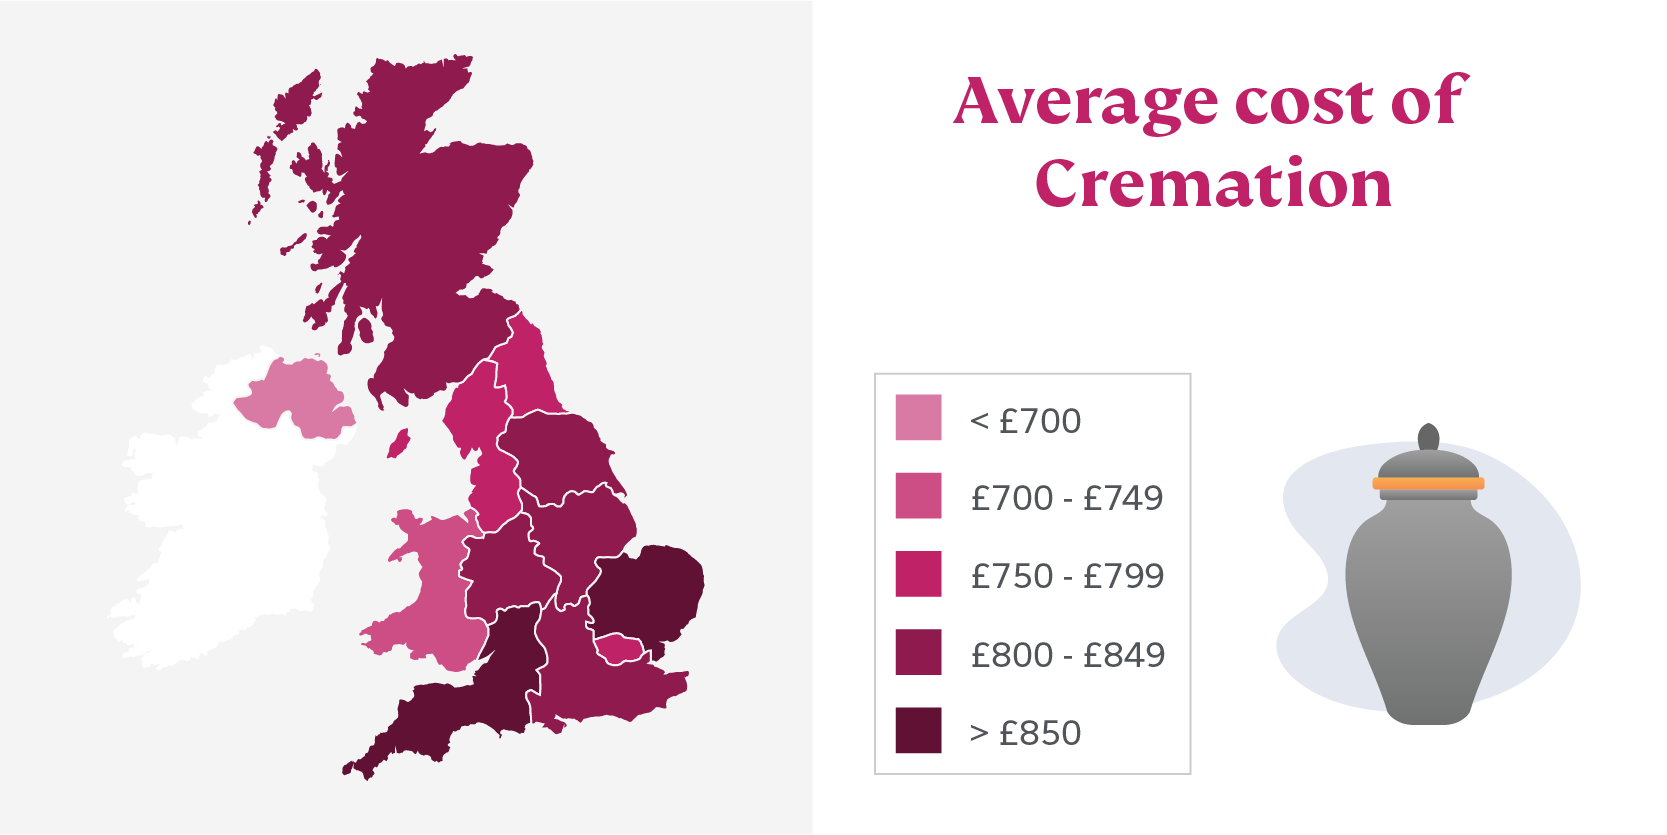 Average cost of cremation